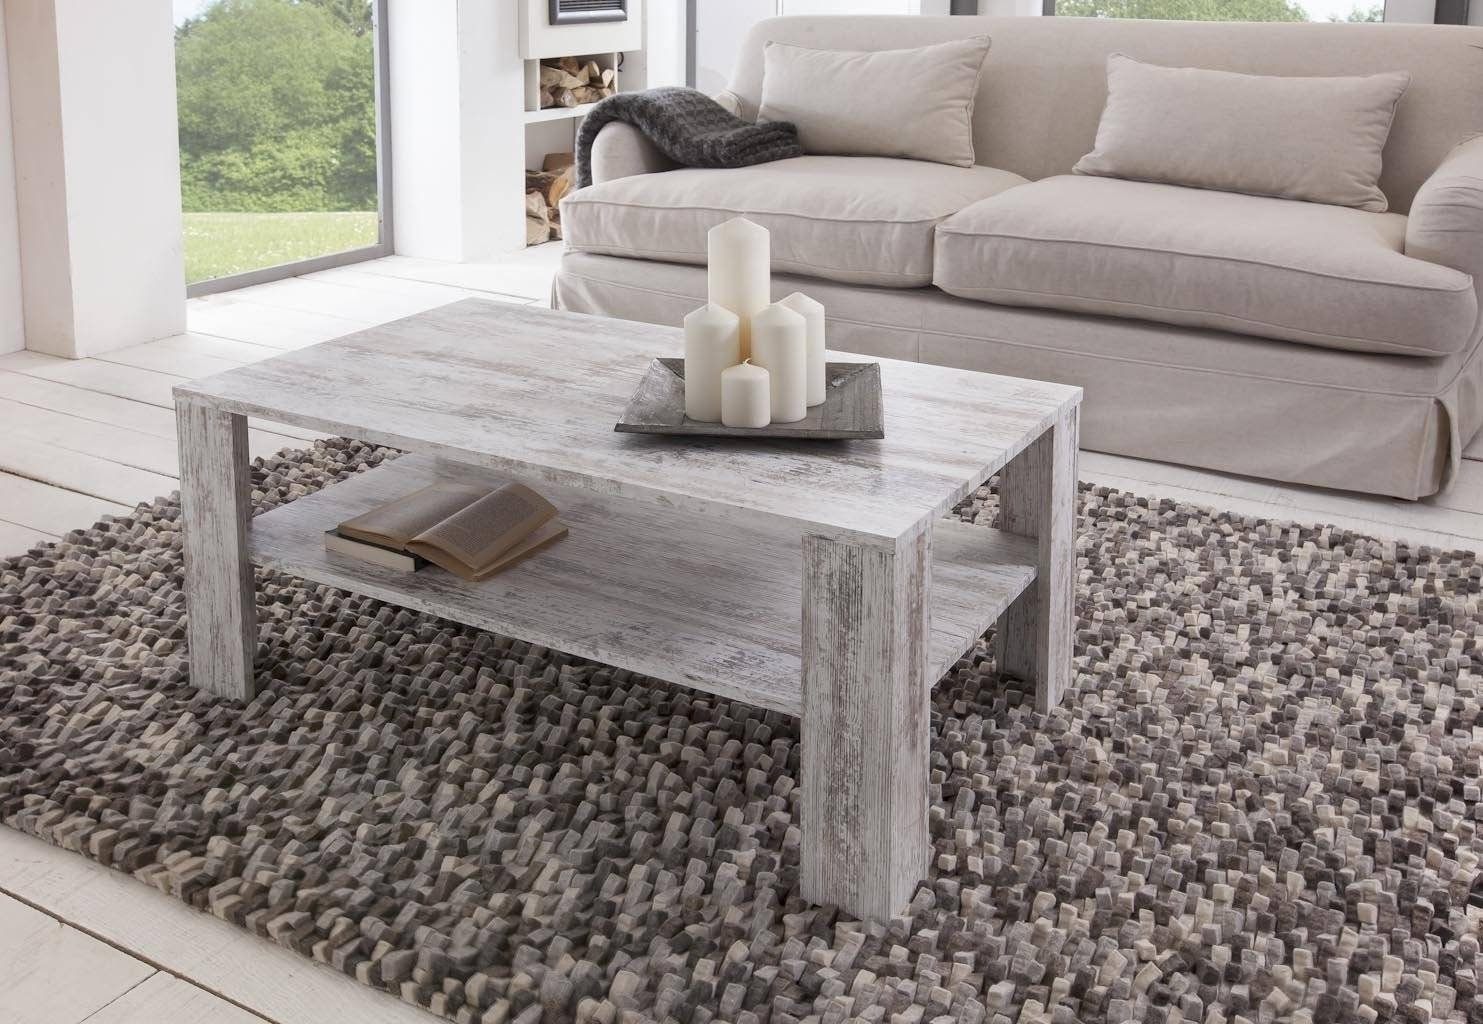 2017 best of gray wood coffee tables shabby chic coffee table furniture shabby chic coffee table ideas inside gray wood coffee tables geotapseo Images